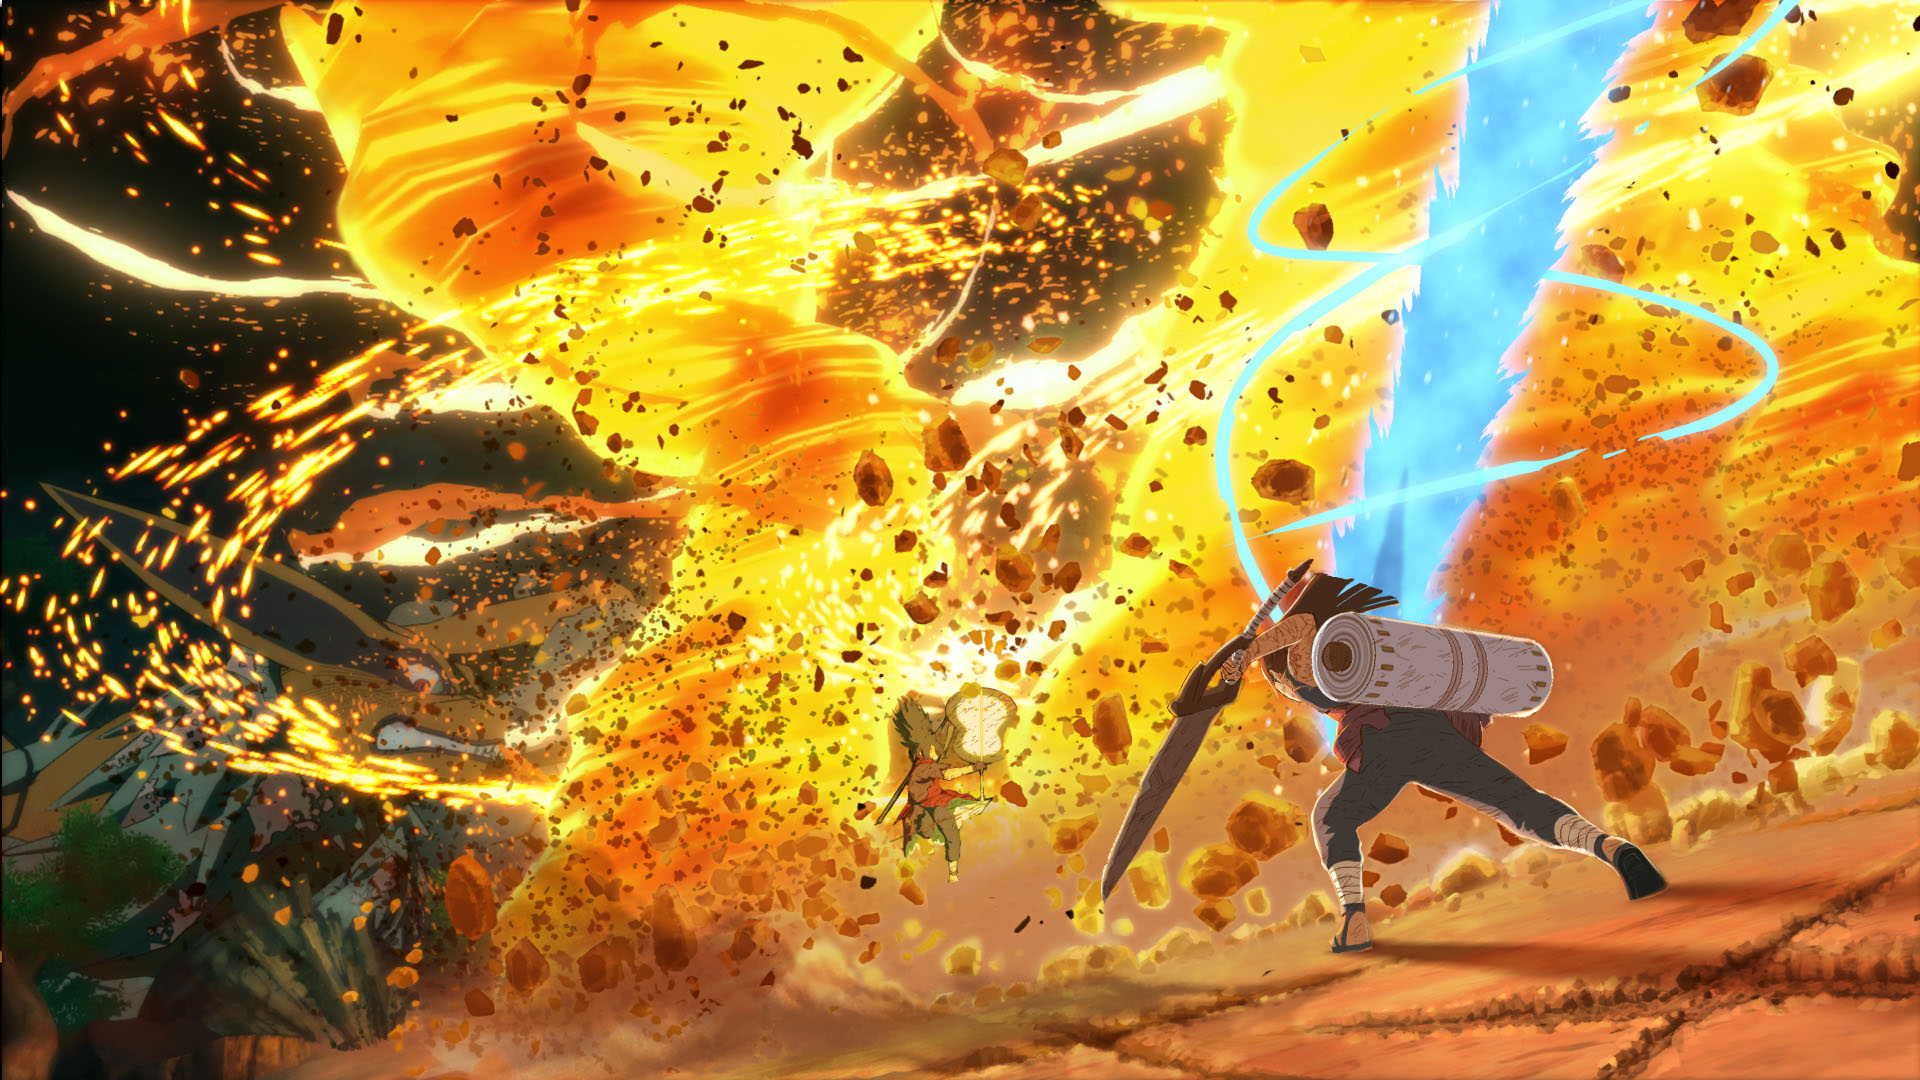 http://www.dsogaming.com/wp-content/uploads/2014/12/NARUTO-SHIPPUDEN-Ultimate-Ninja-STORM-4-feature.jpg